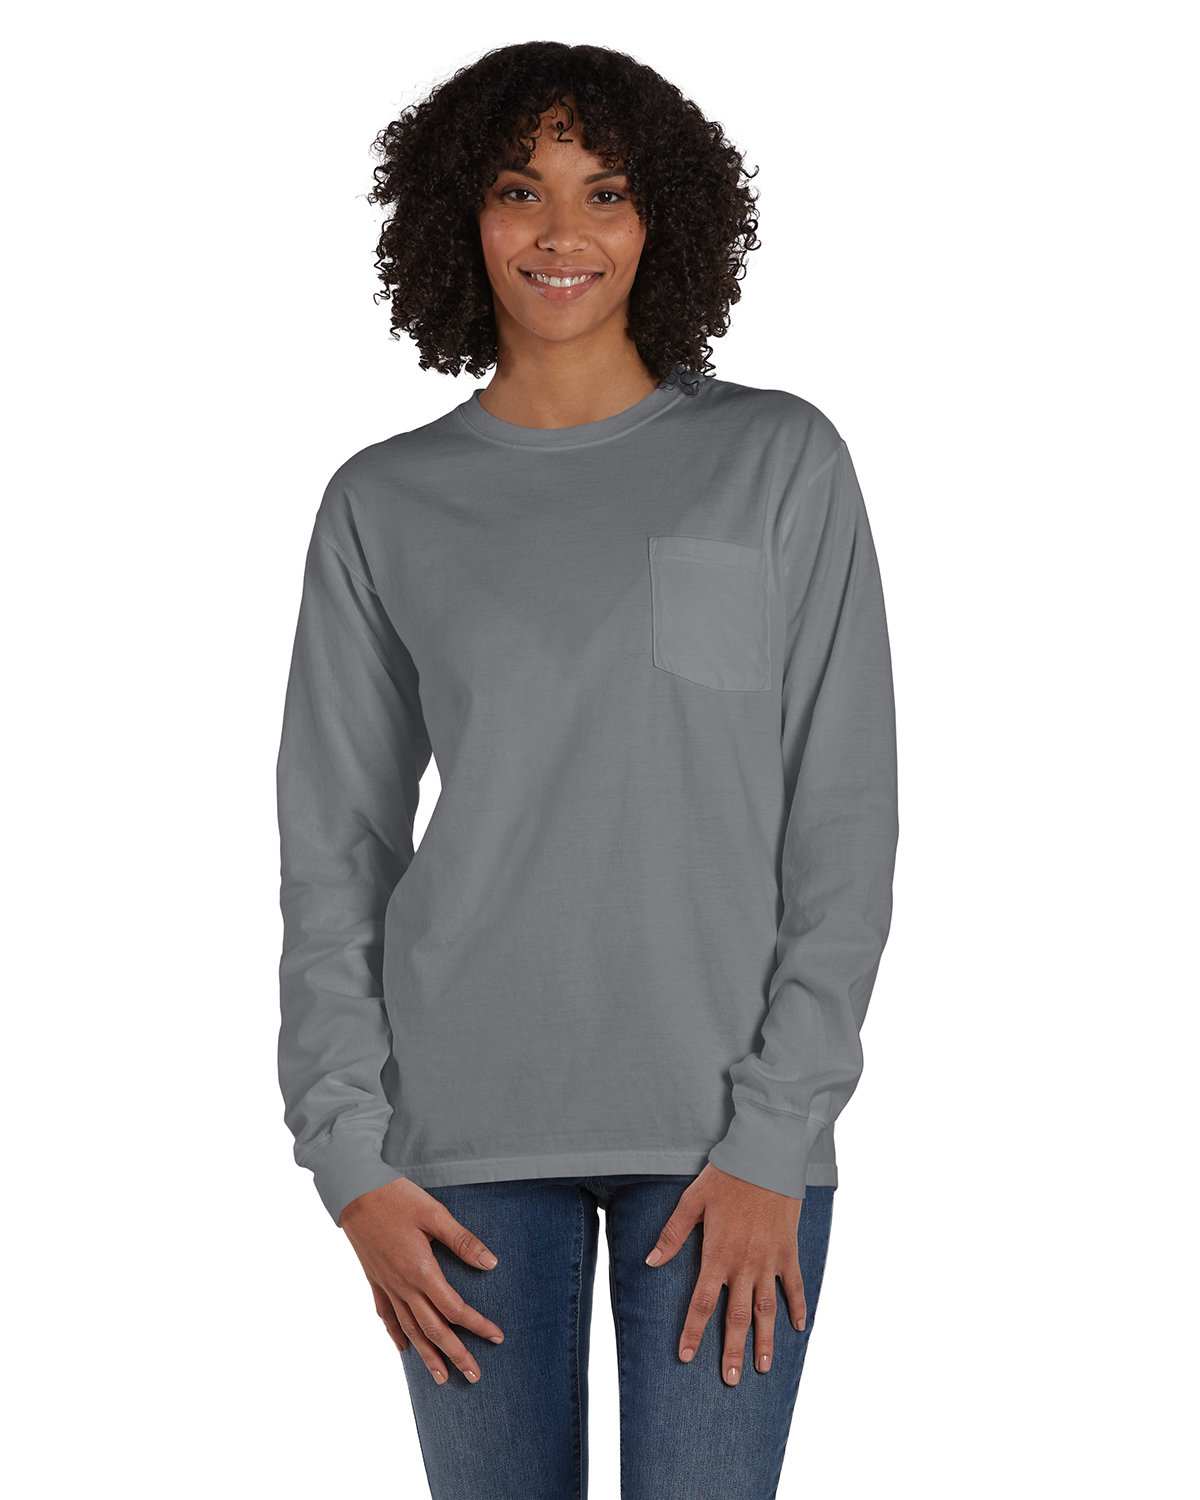 ComfortWash by Hanes Unisex Garment-Dyed Long-Sleeve T-Shirt with Pocket CONCRETE